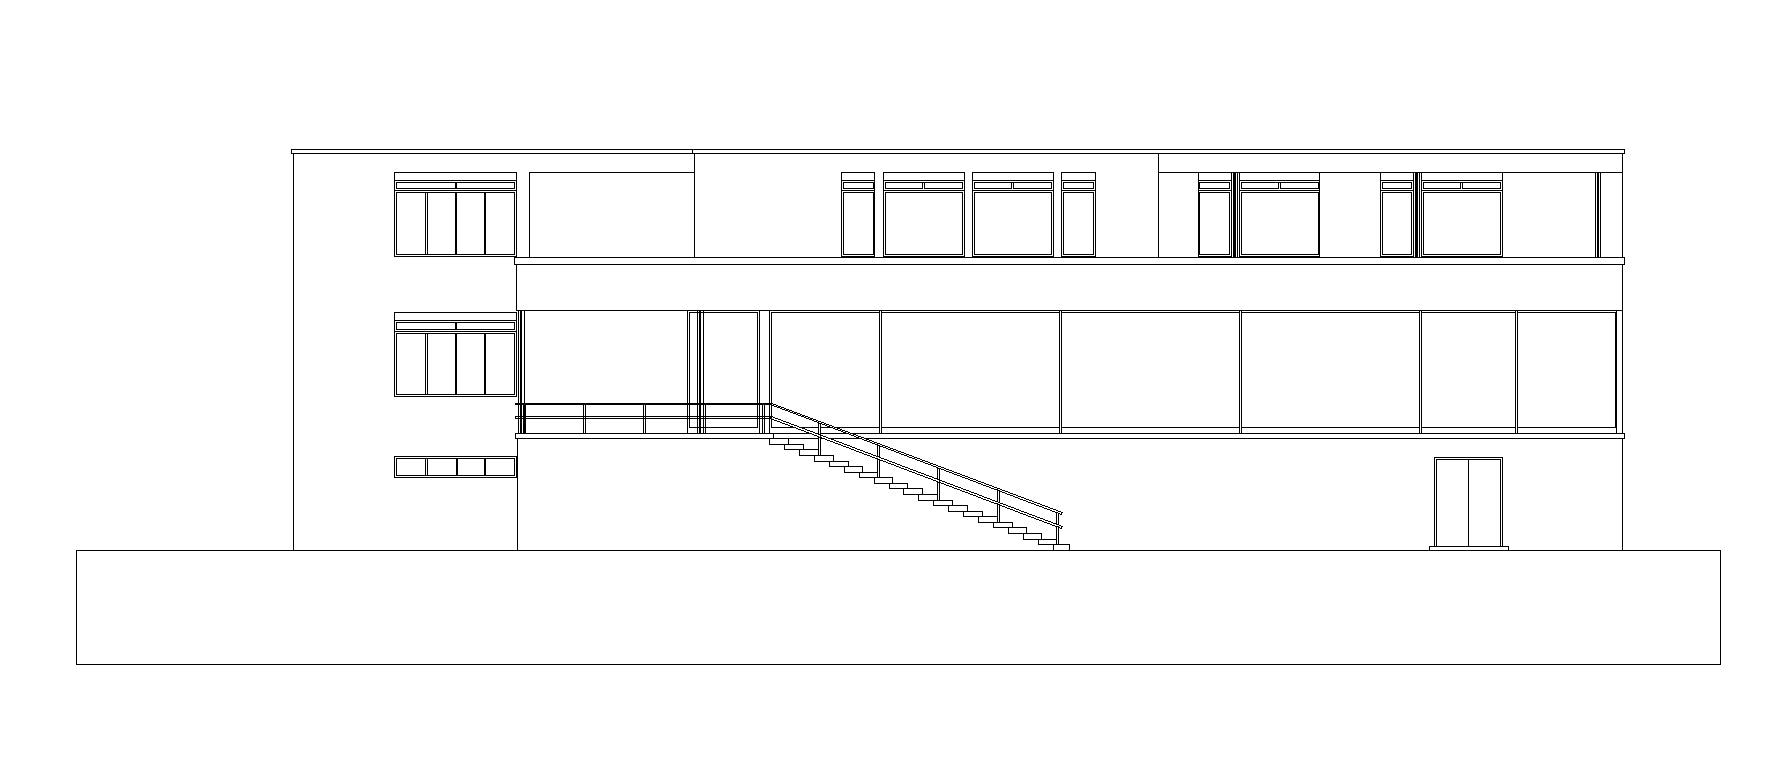 【Famous Architecture Project】Tugendhat Villa-Ludwig Mies van der Rohe-CAD Drawings